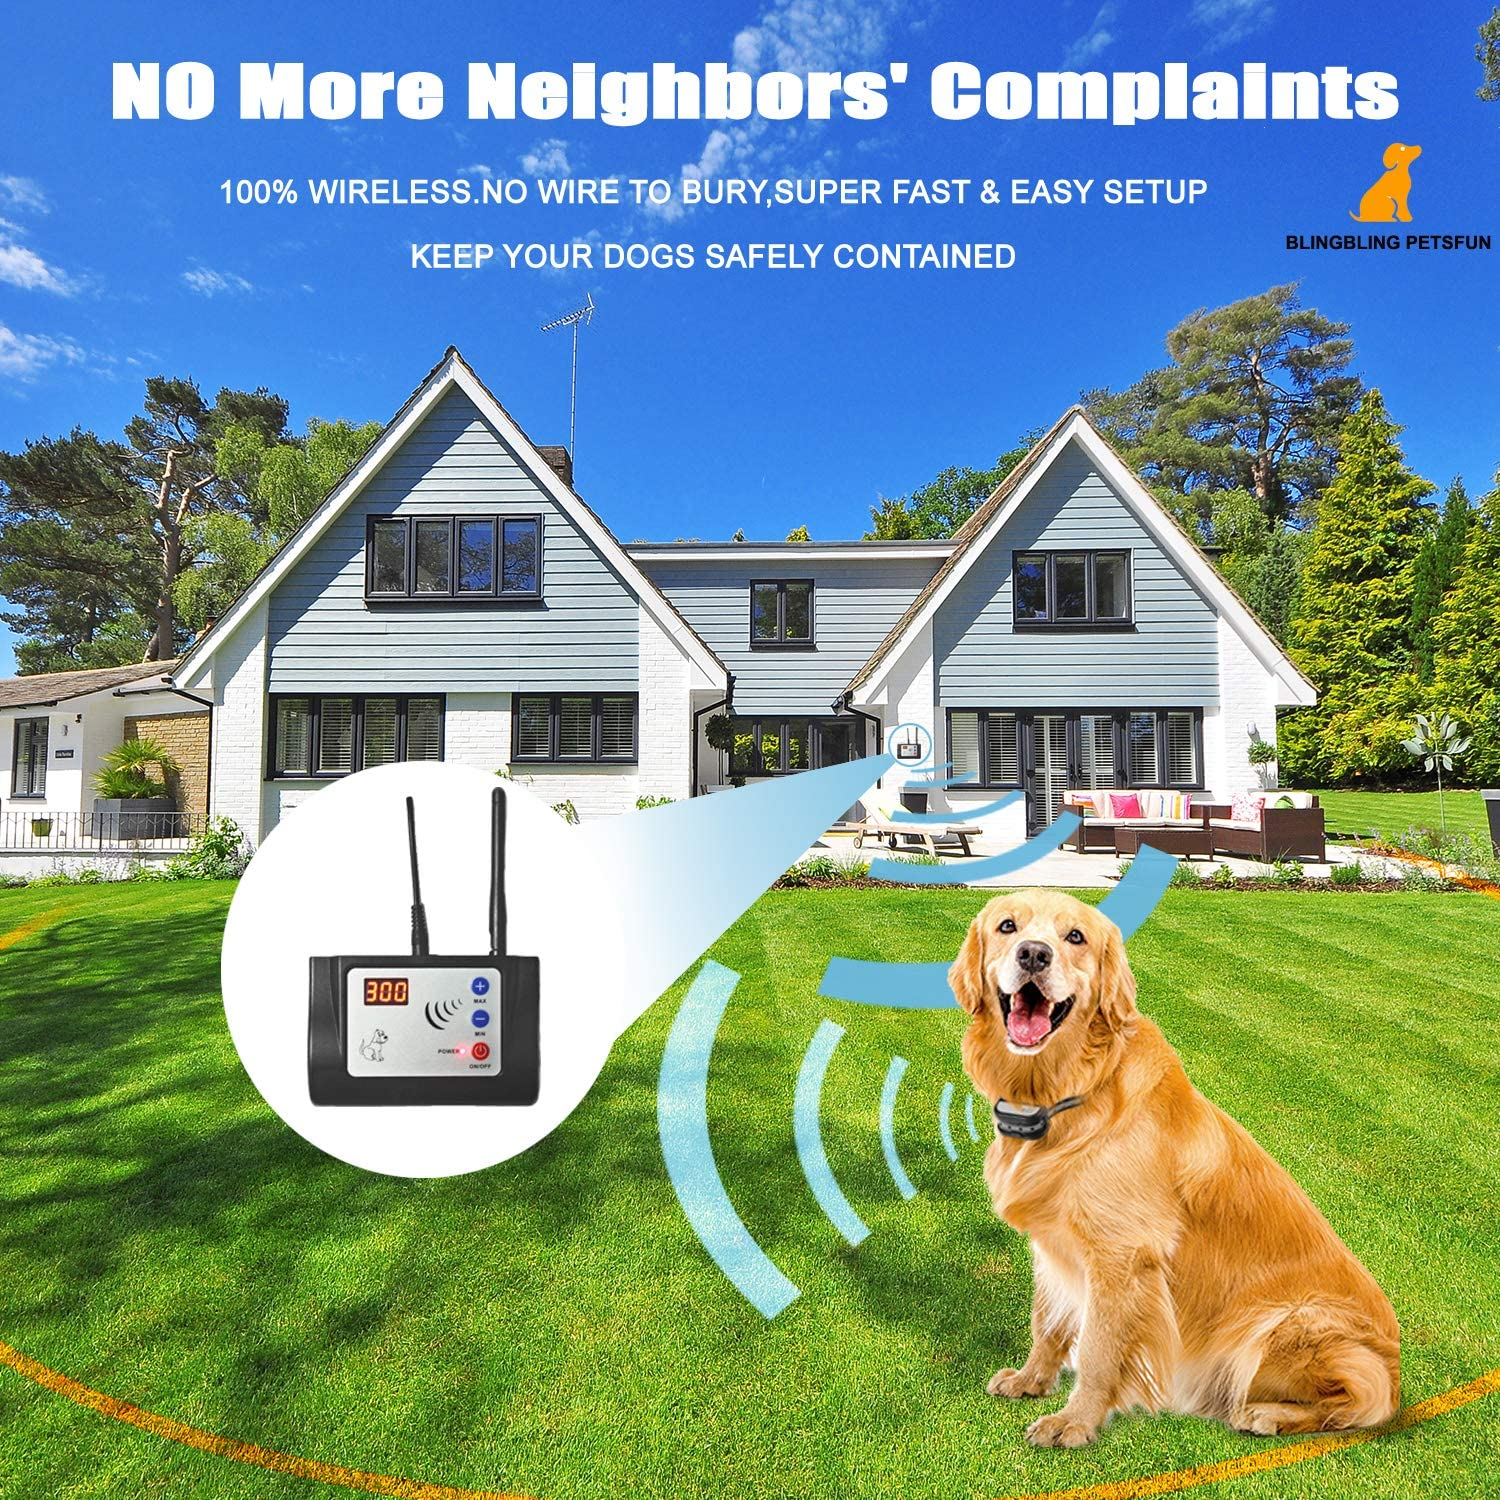 Blingbling Petsfun Electric Wireless Dog Fence System Black Pet Containment System with Waterproof and Rechargeable Training Collar Receiver for 1 Dogs Pets Container Boundary